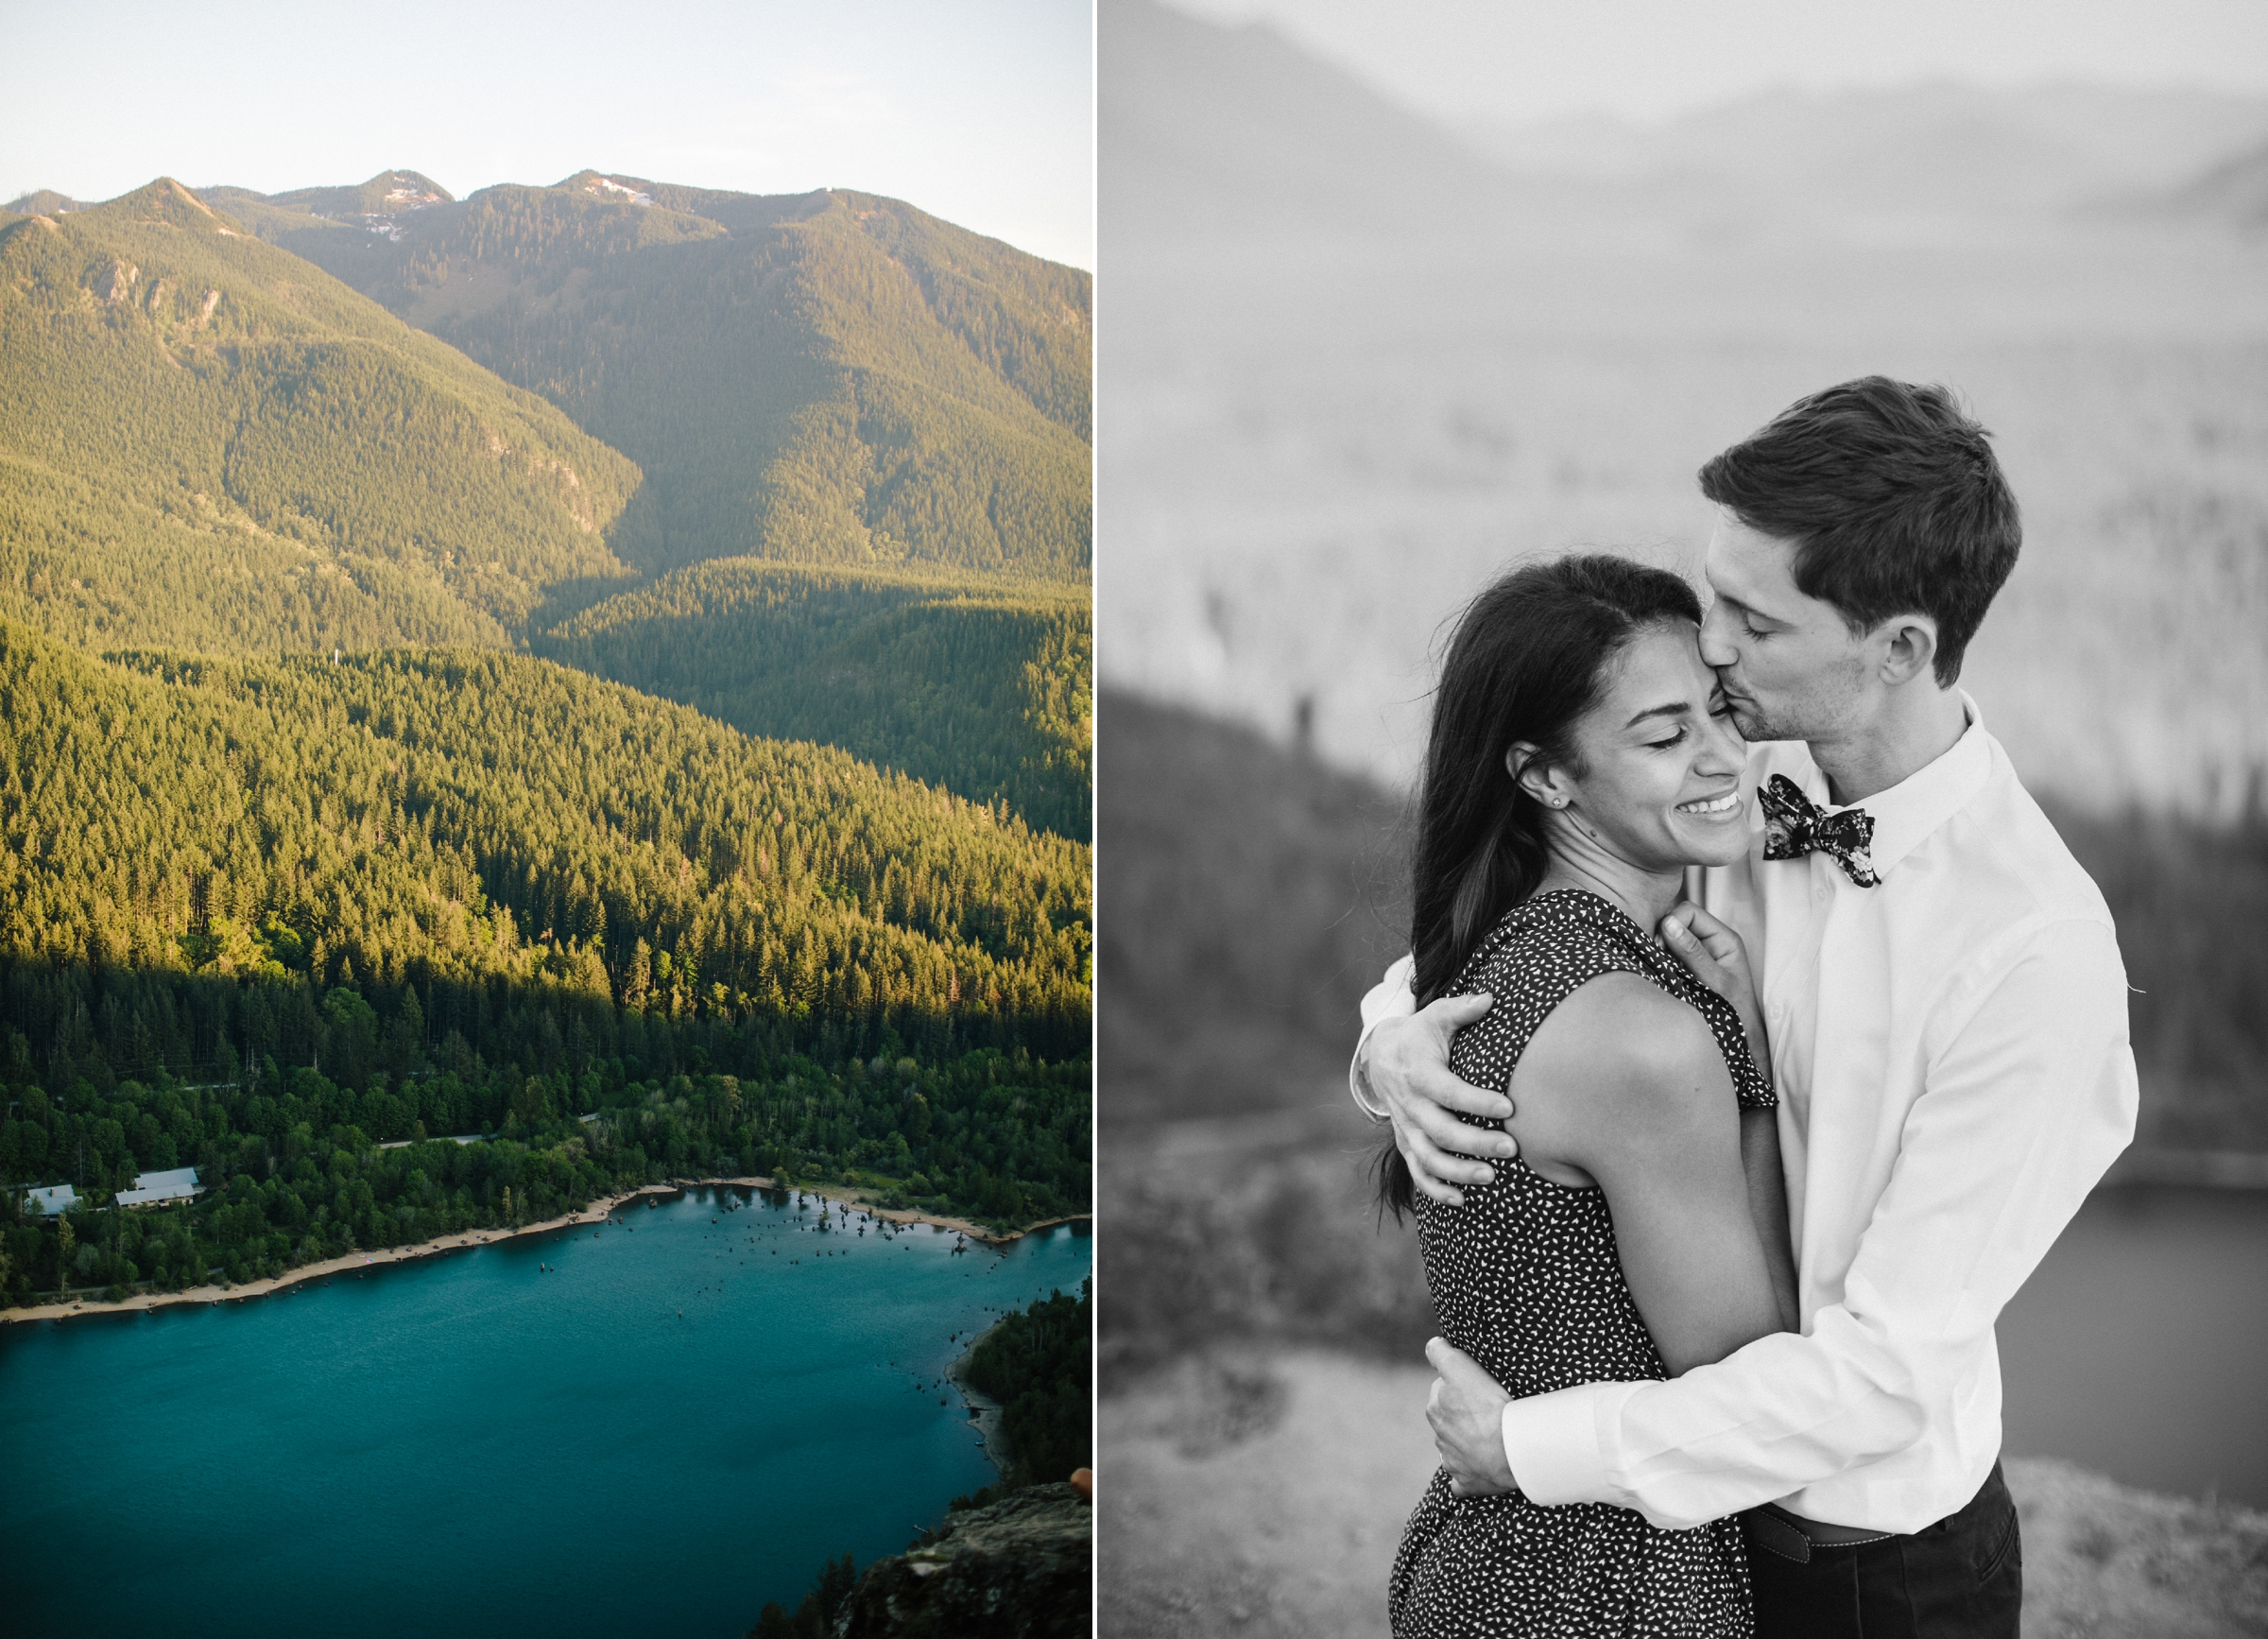 adventure-mountain-top-elopement-photographer-pnw-seattle-washington-wedding-engagement-hike-photography-catie-bergman_0008.jpg